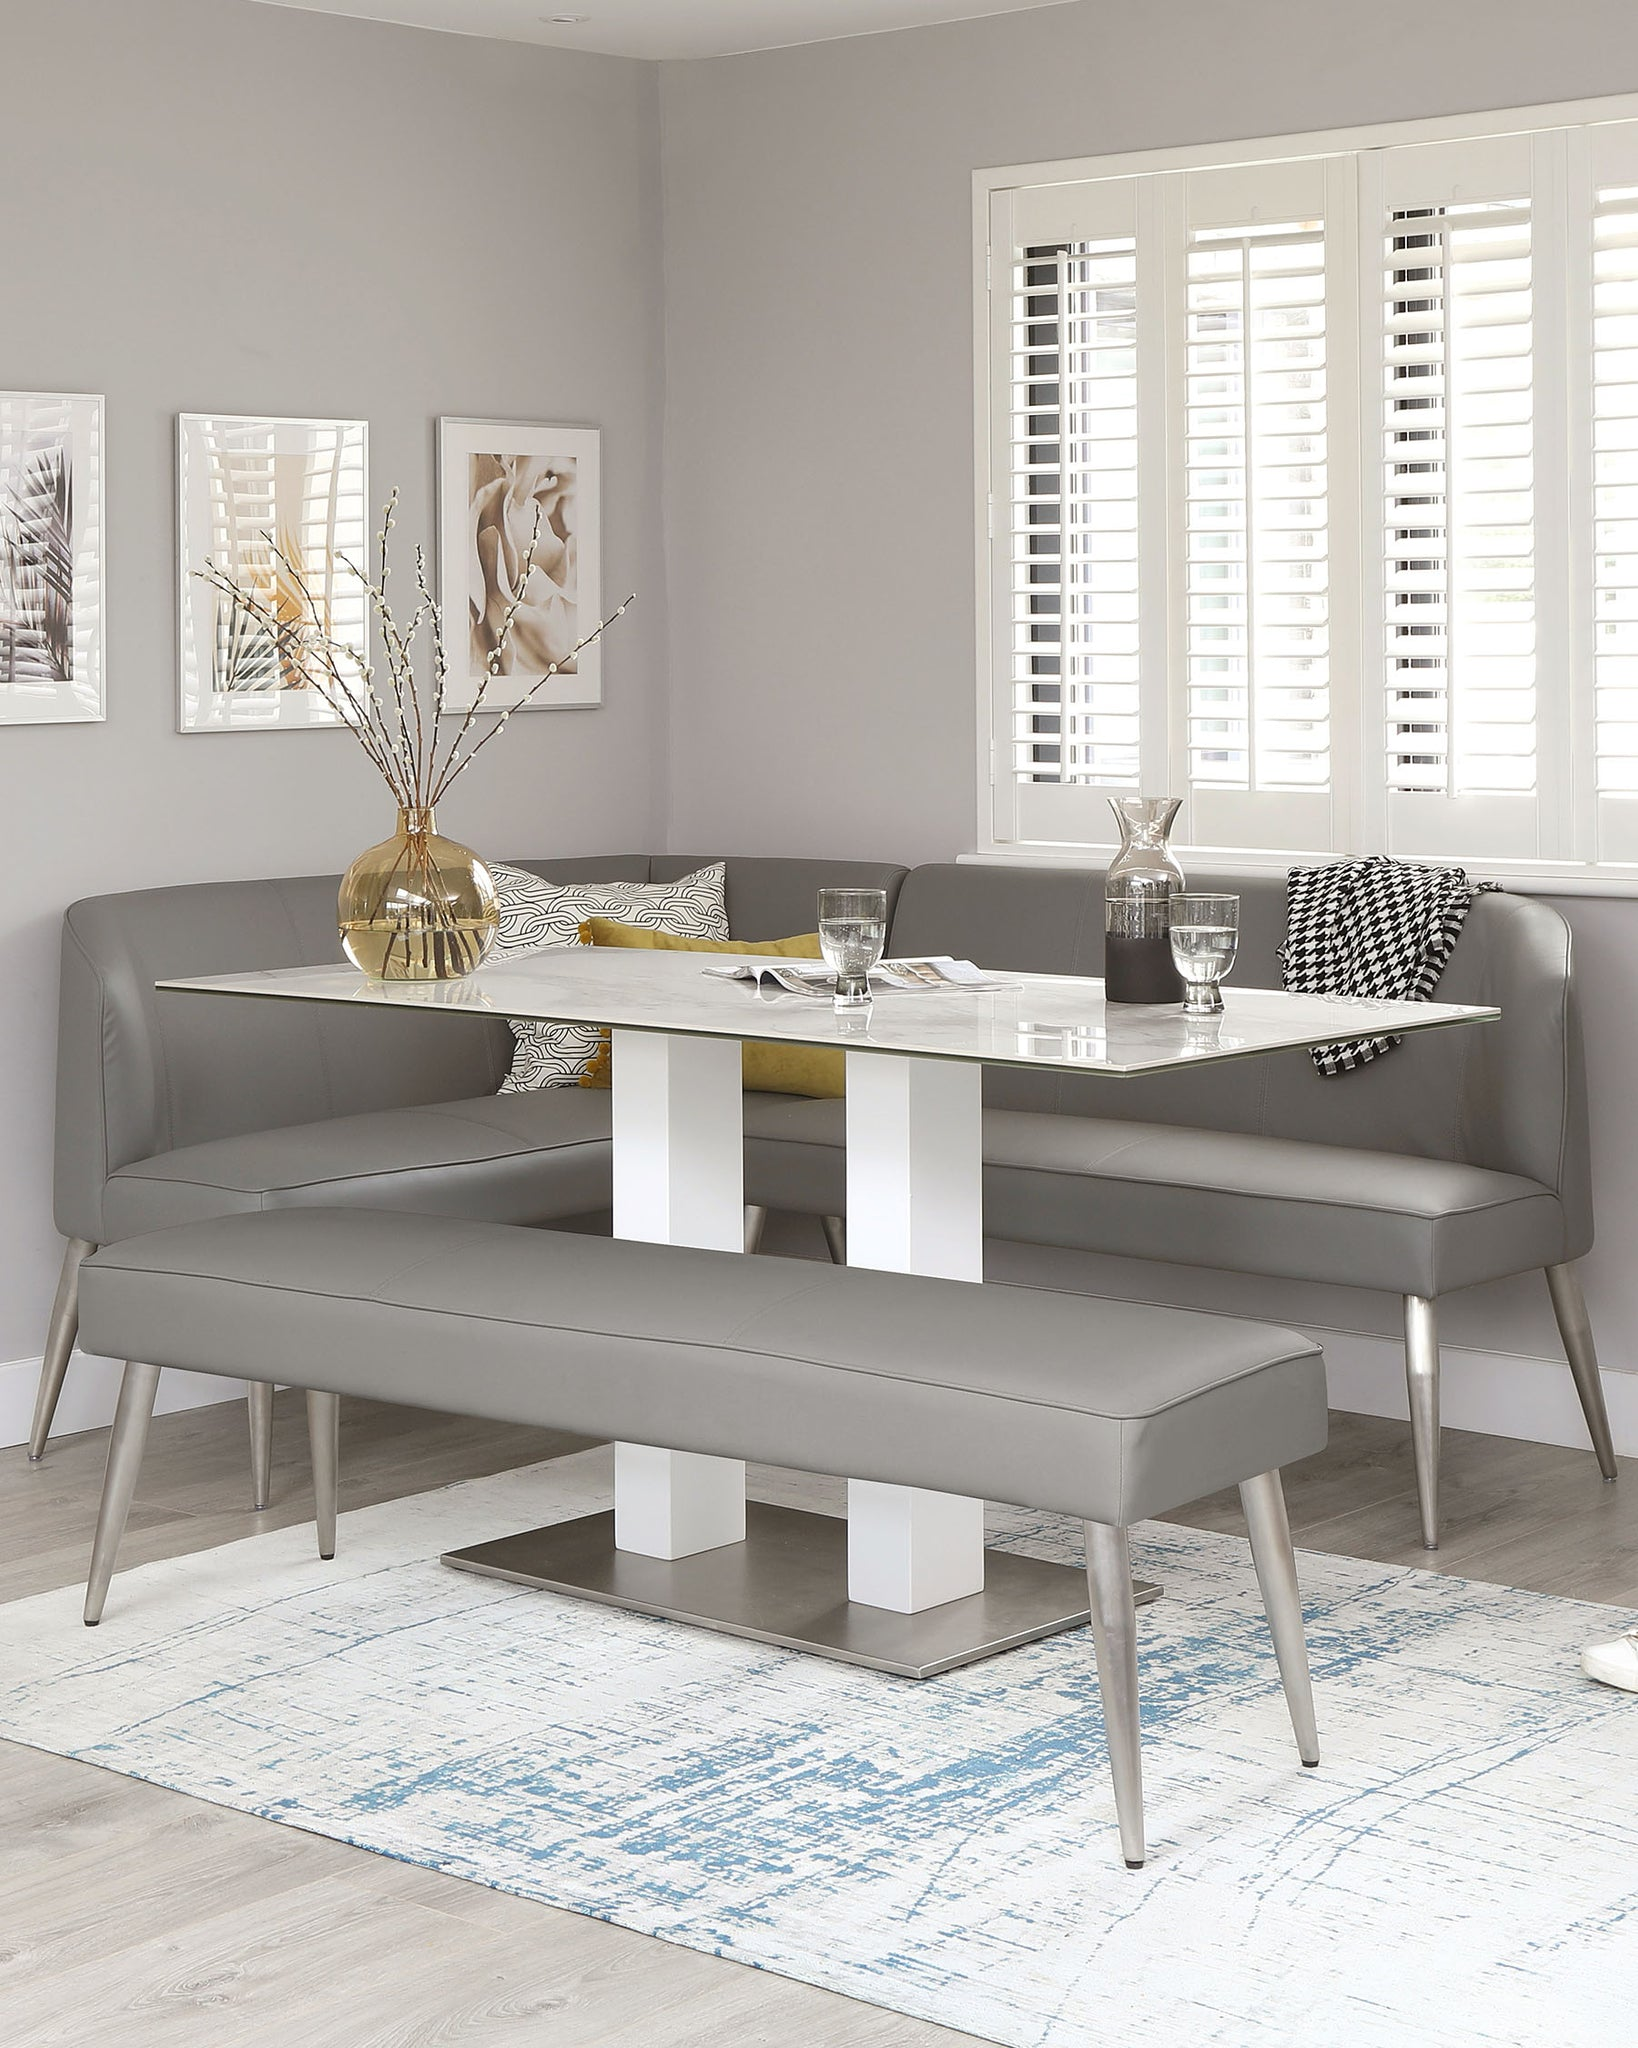 Mellow 5 Seater Mid Grey Faux Leather Brushed Stainless Steel Right Hand Corner Bench